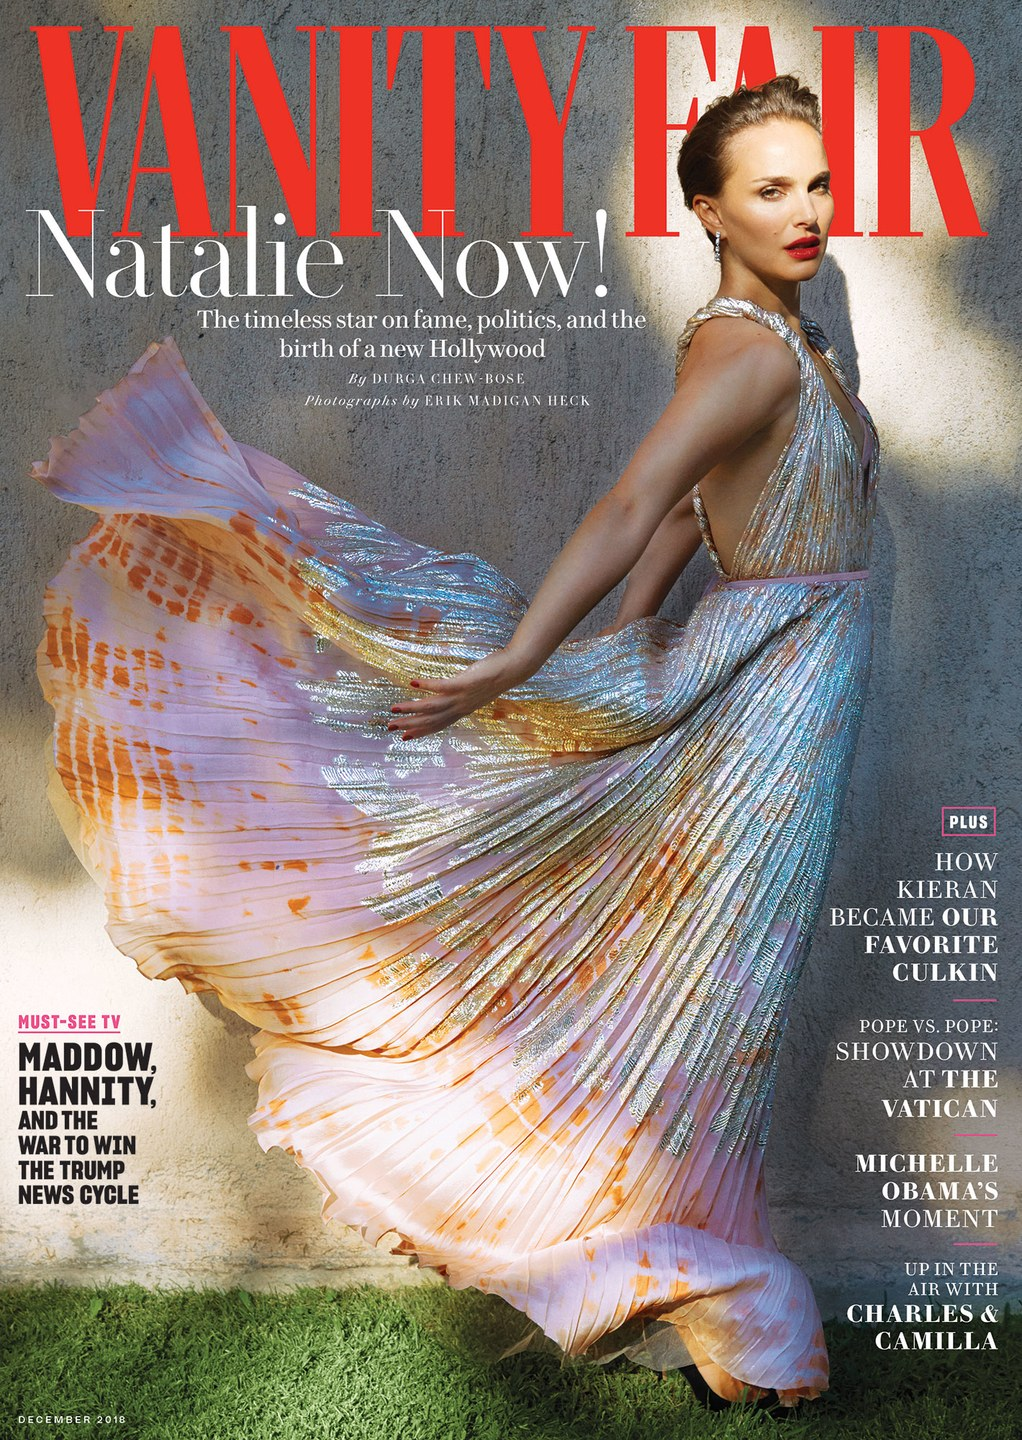 Natalie Portman in Vanity Fair